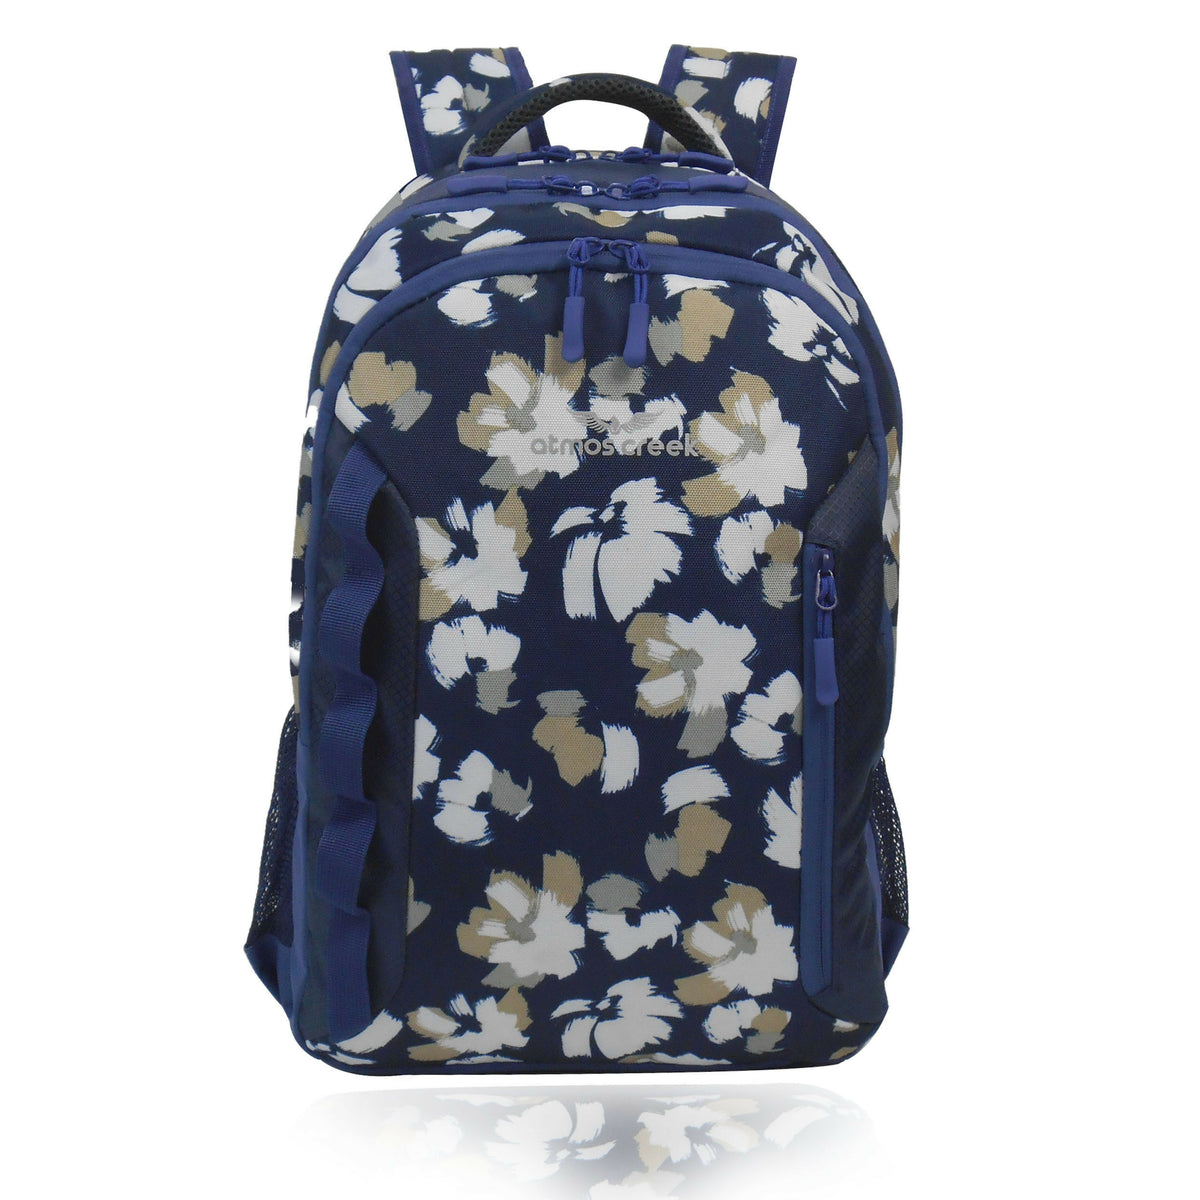 Floral Casual Backpack with laptop sleeve for girls FAM  265d34953be41